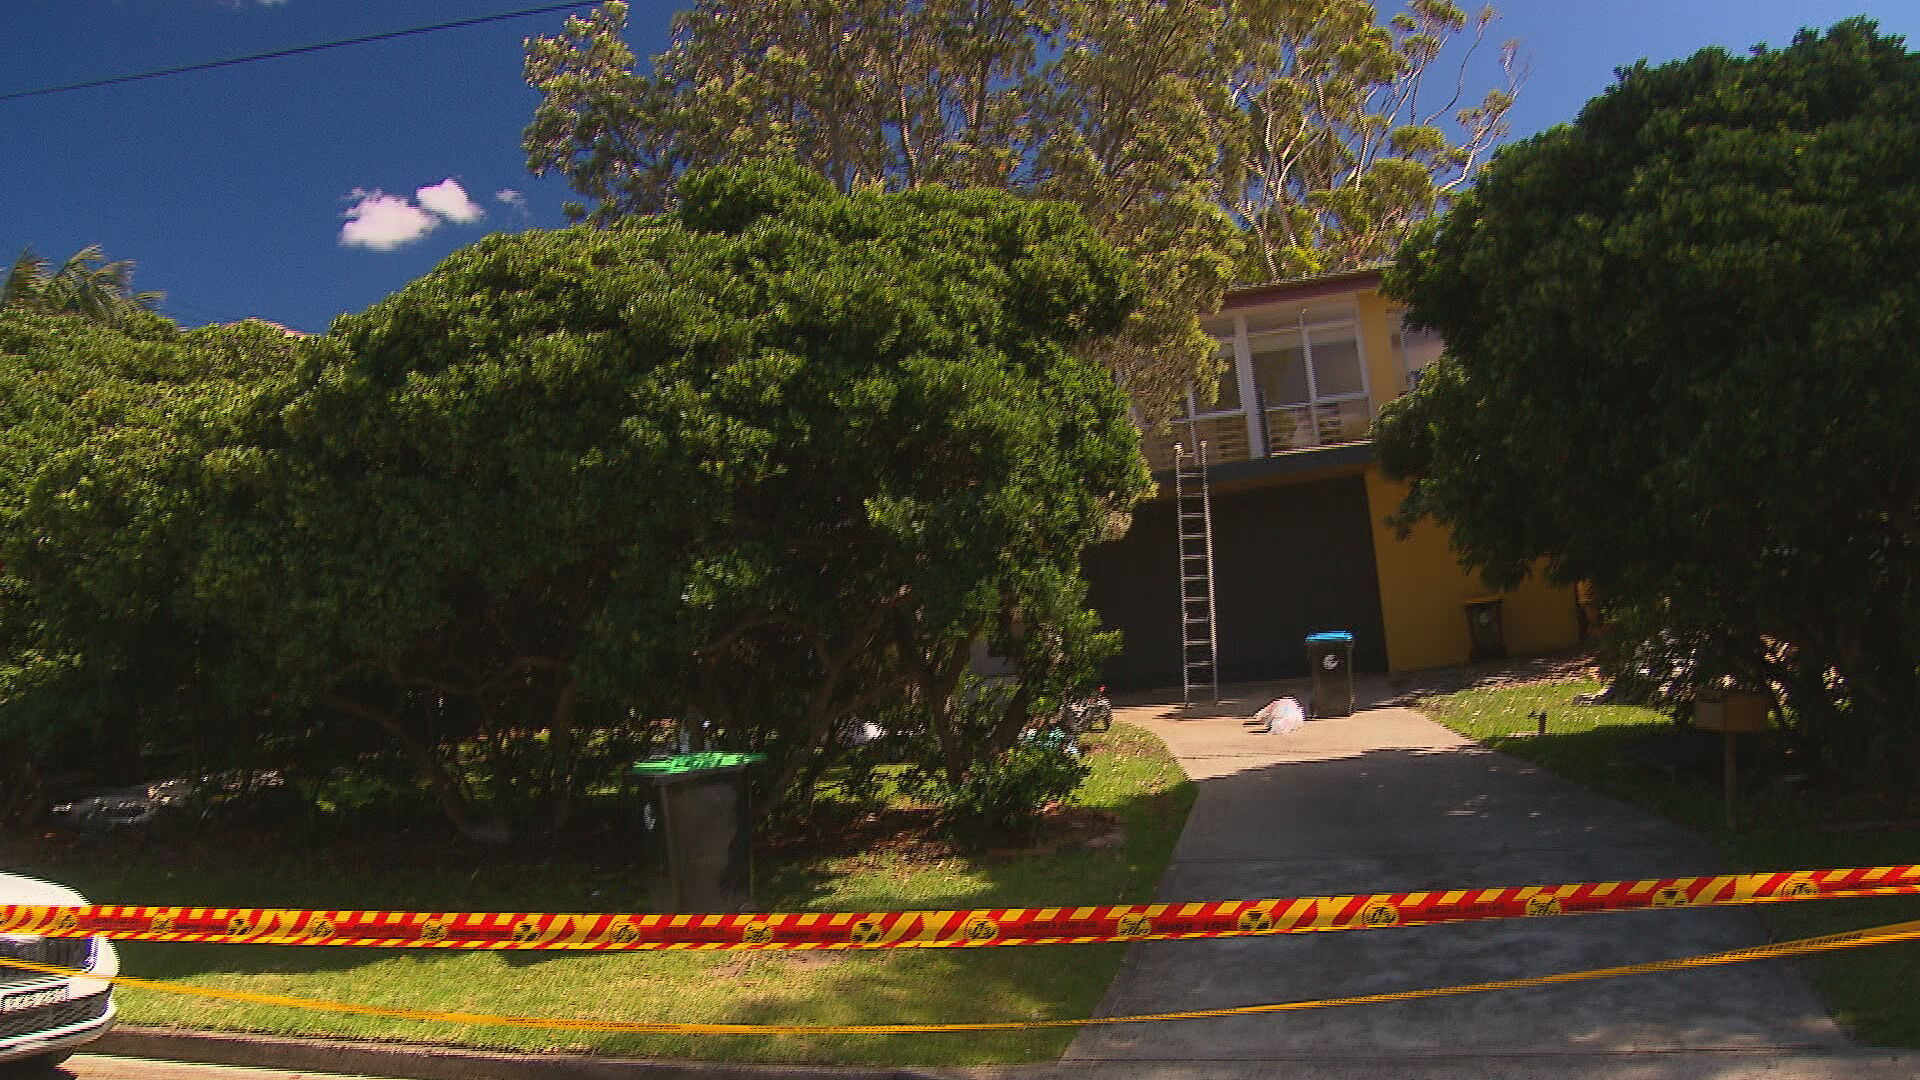 The homeowner who hired the pair apologised and said he was told by the tenant that the property needed repairs.